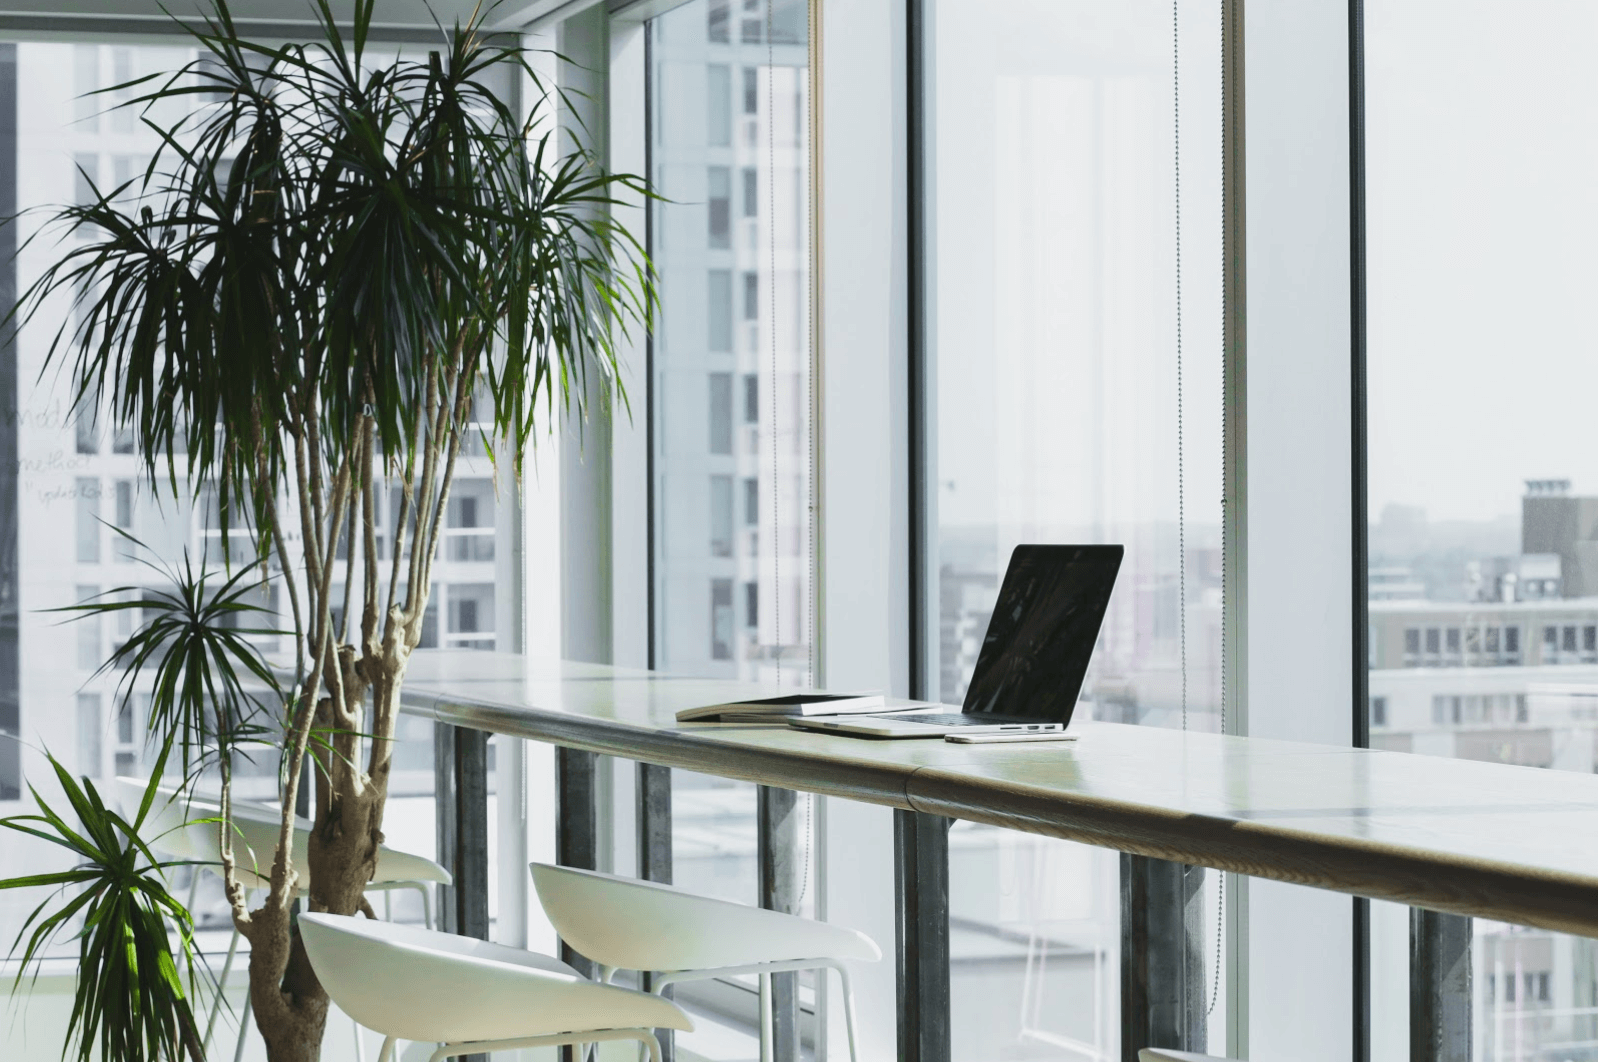 Biophilic Design: How To Incorporate Plants Into Your Office Interior